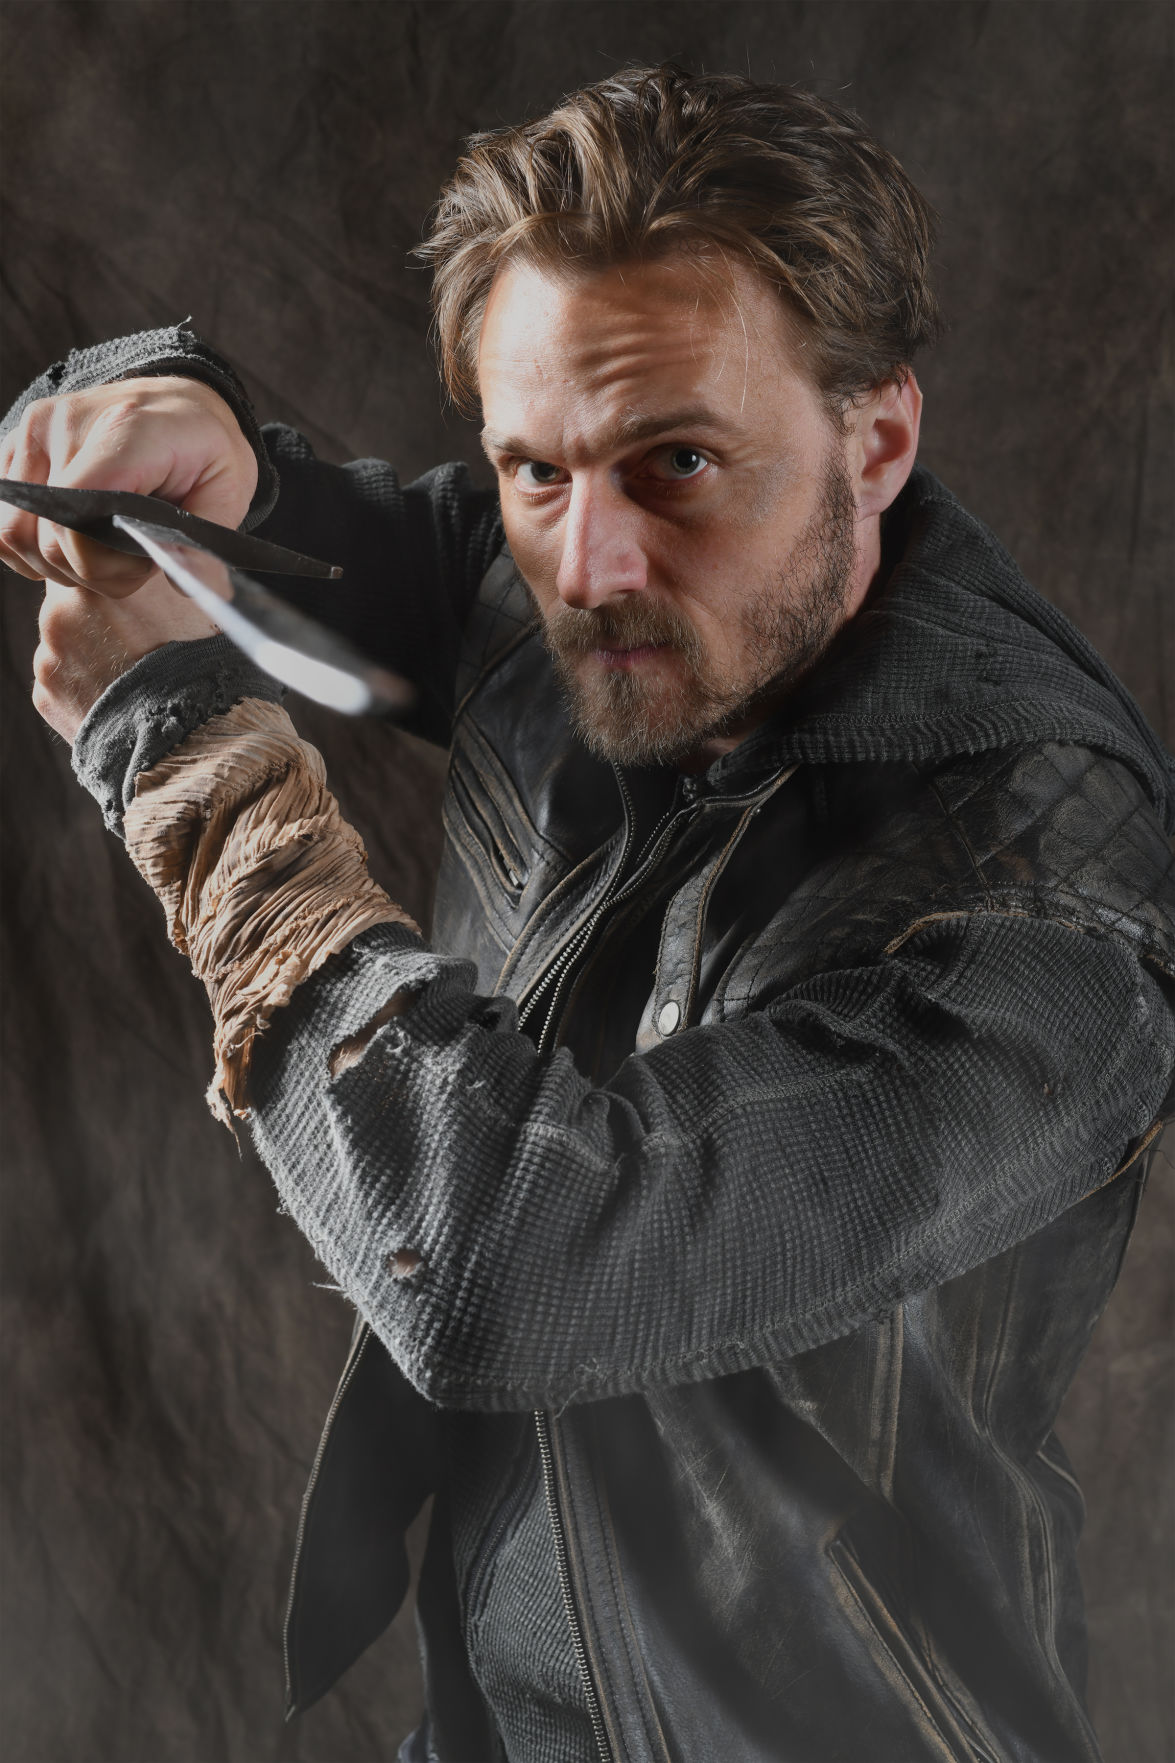 Macbeth w sword.jpg